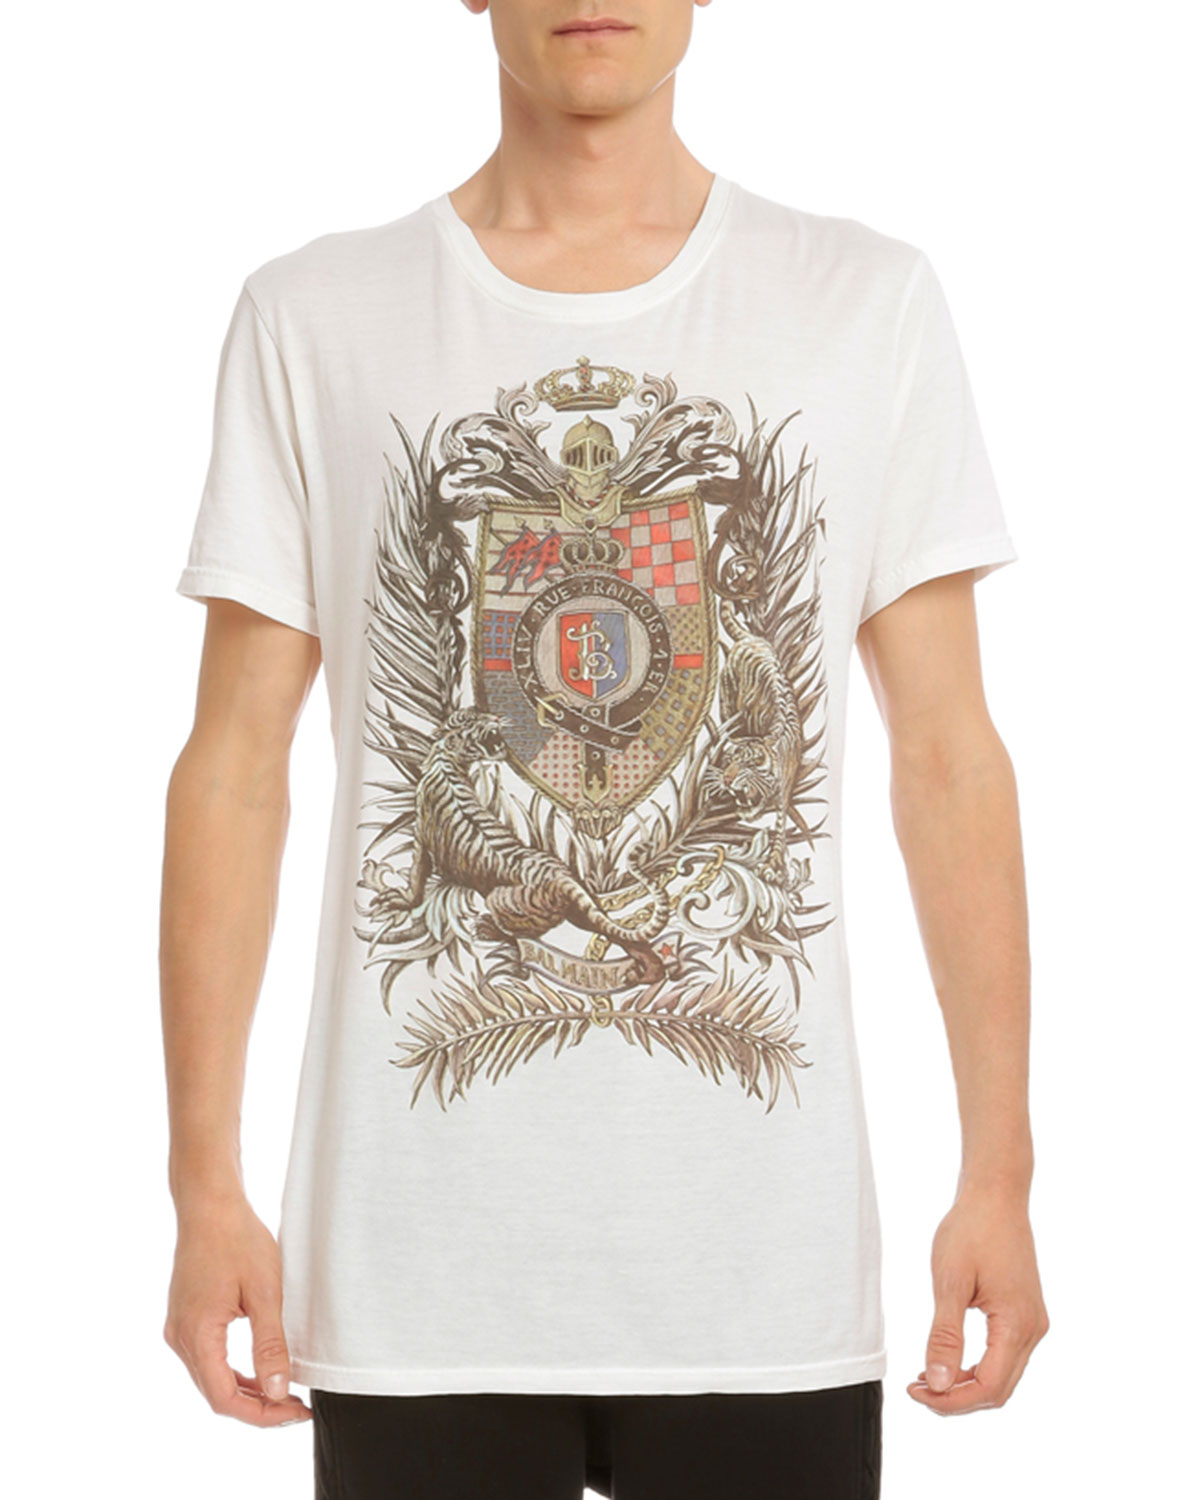 Crest-Print Cotton T-Shirt, White